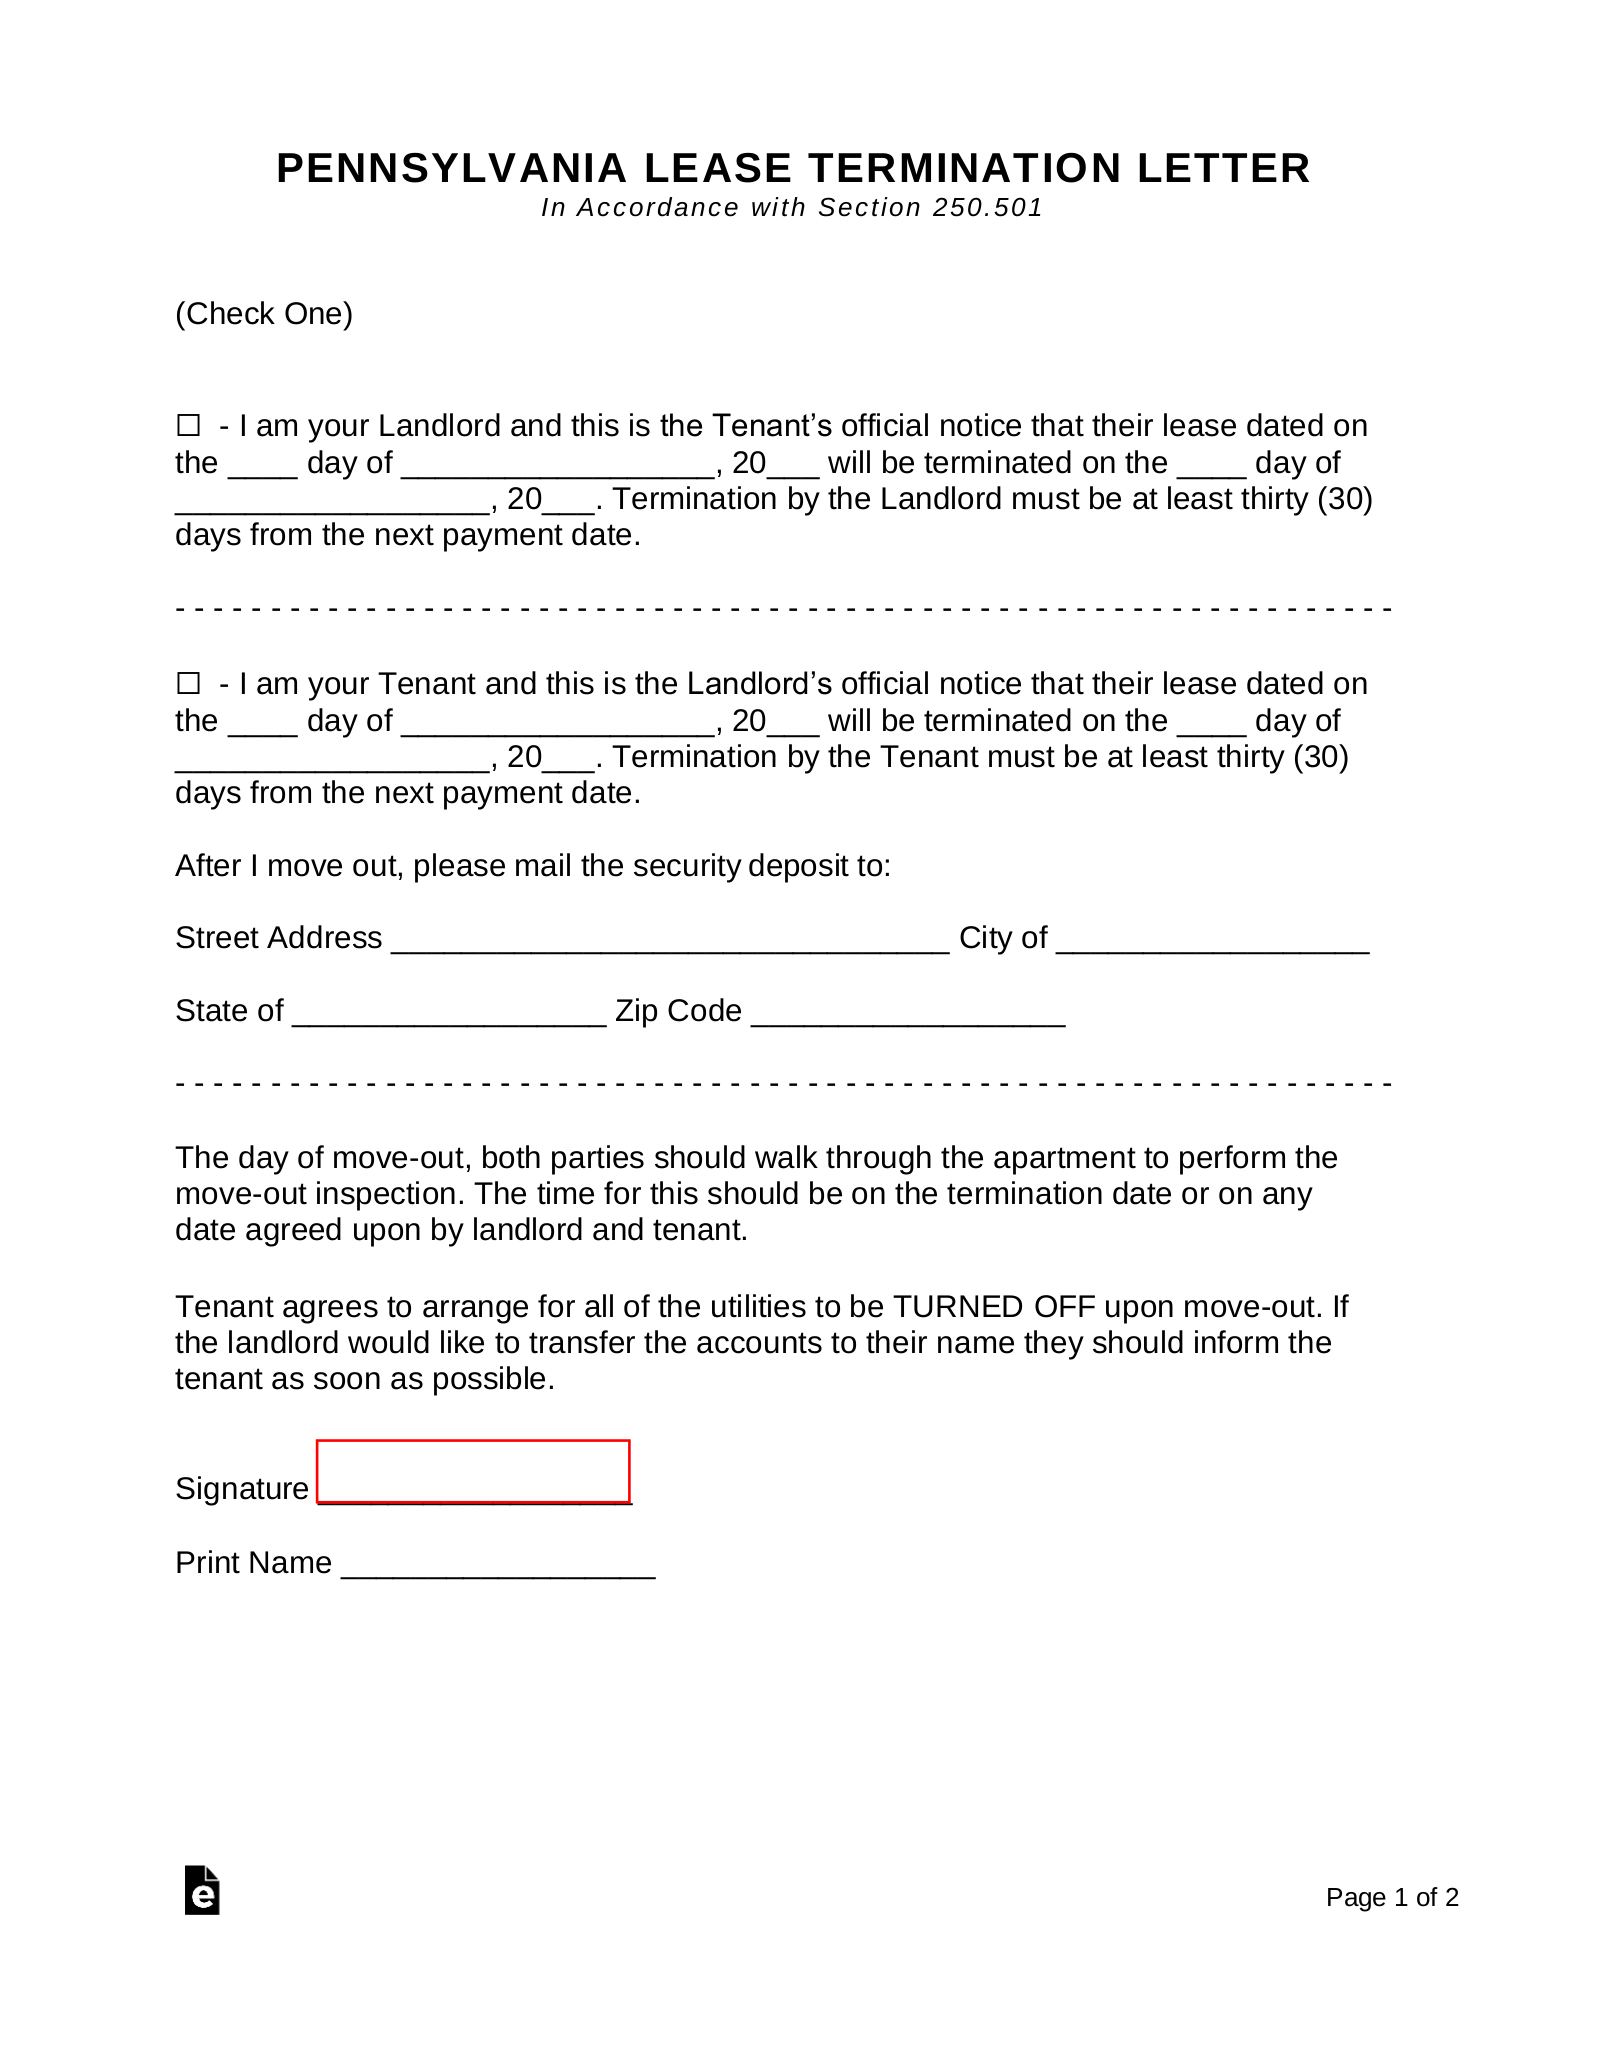 Early Lease Termination Letter >> Free Pennsylvania Lease Termination Letter Form 30 Days